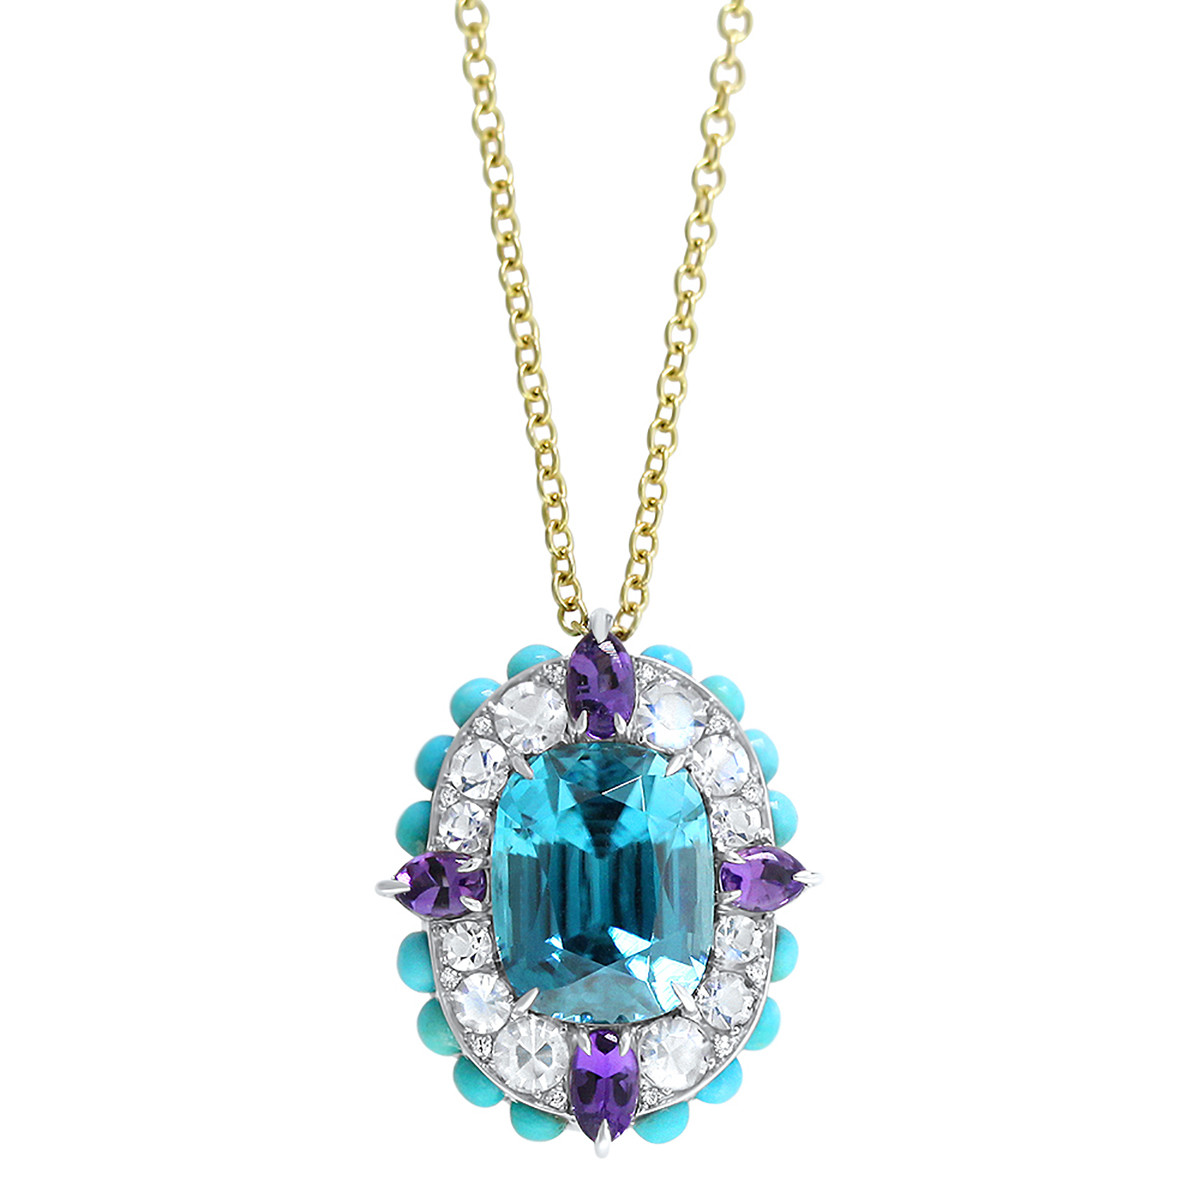 Multicolored Gemstone & Diamond Cluster Pendant